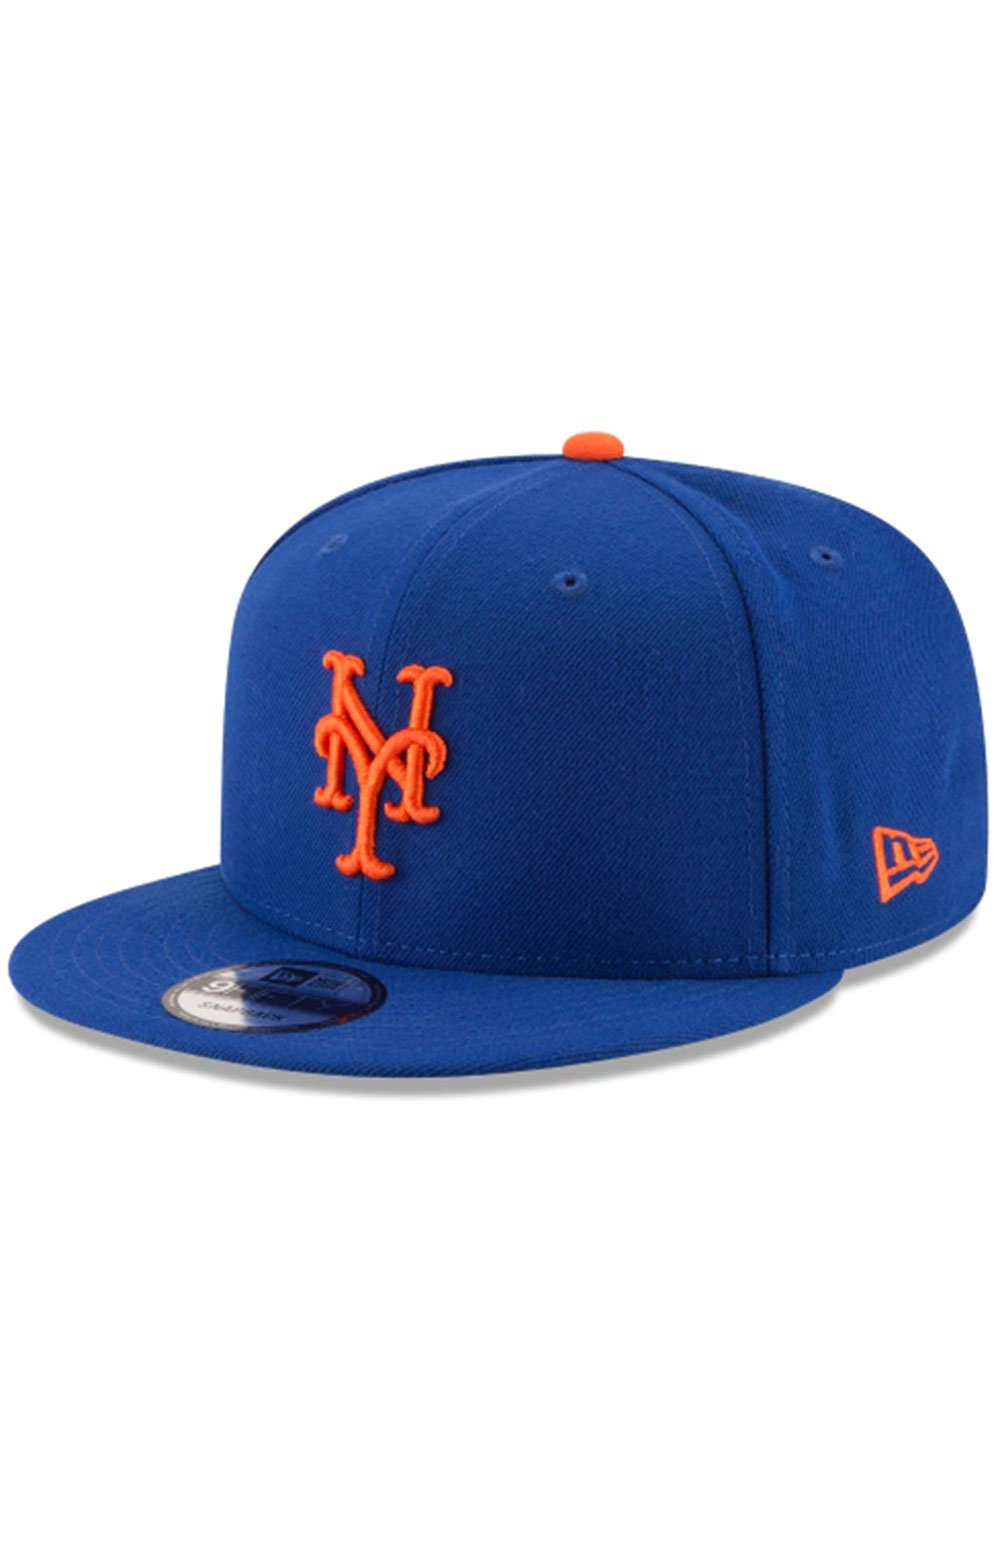 New York Mets Team Color Basic 9Fifty Snap-Back Hat